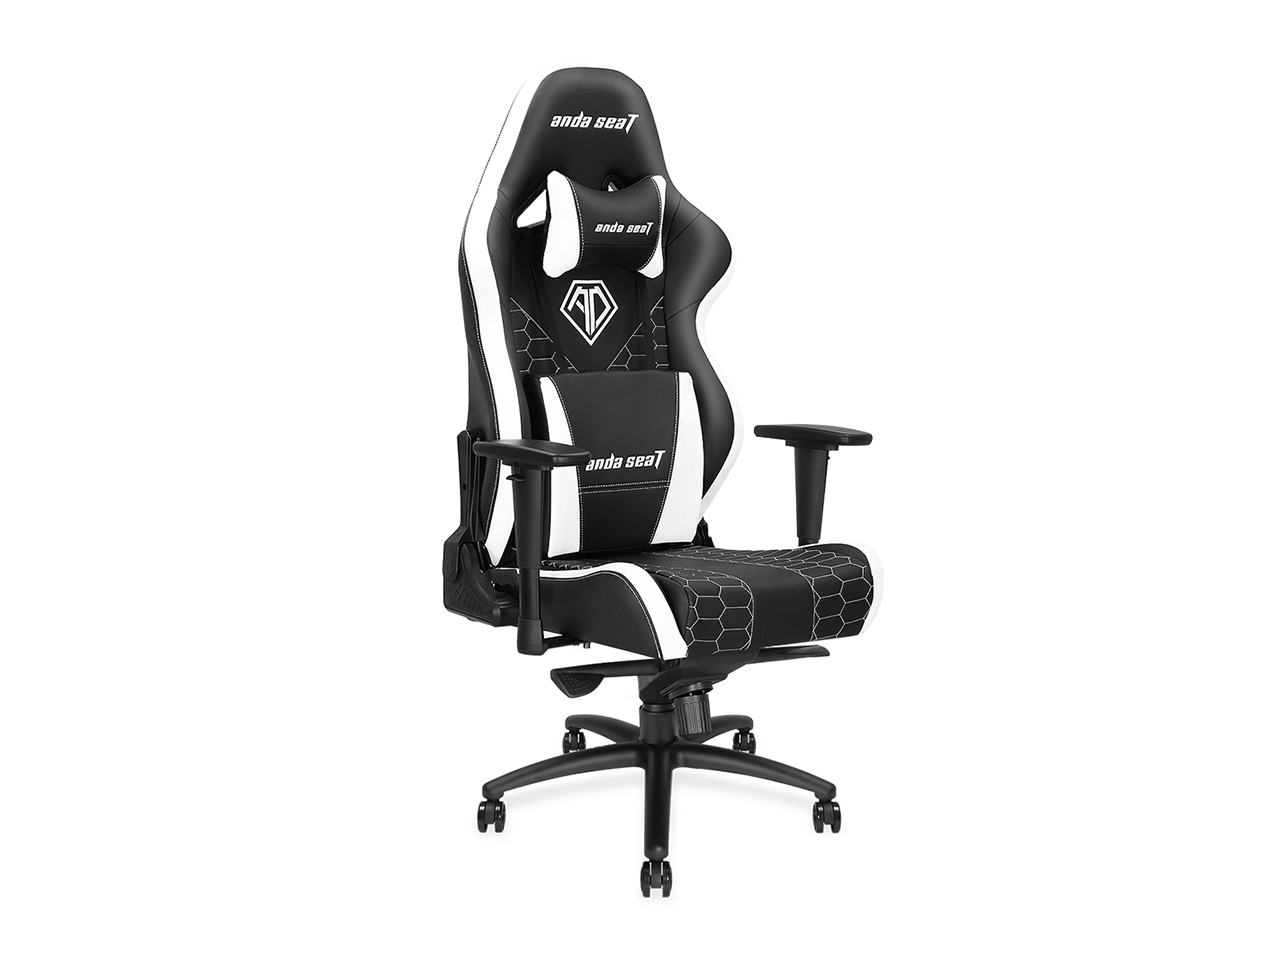 Anda Seat Spirit King Series High-Back Ergonomic eSports/Office Computer Chair with Adjustable Headrest & Lumbar Support (Black/White) AD4XL-05-BW-PV